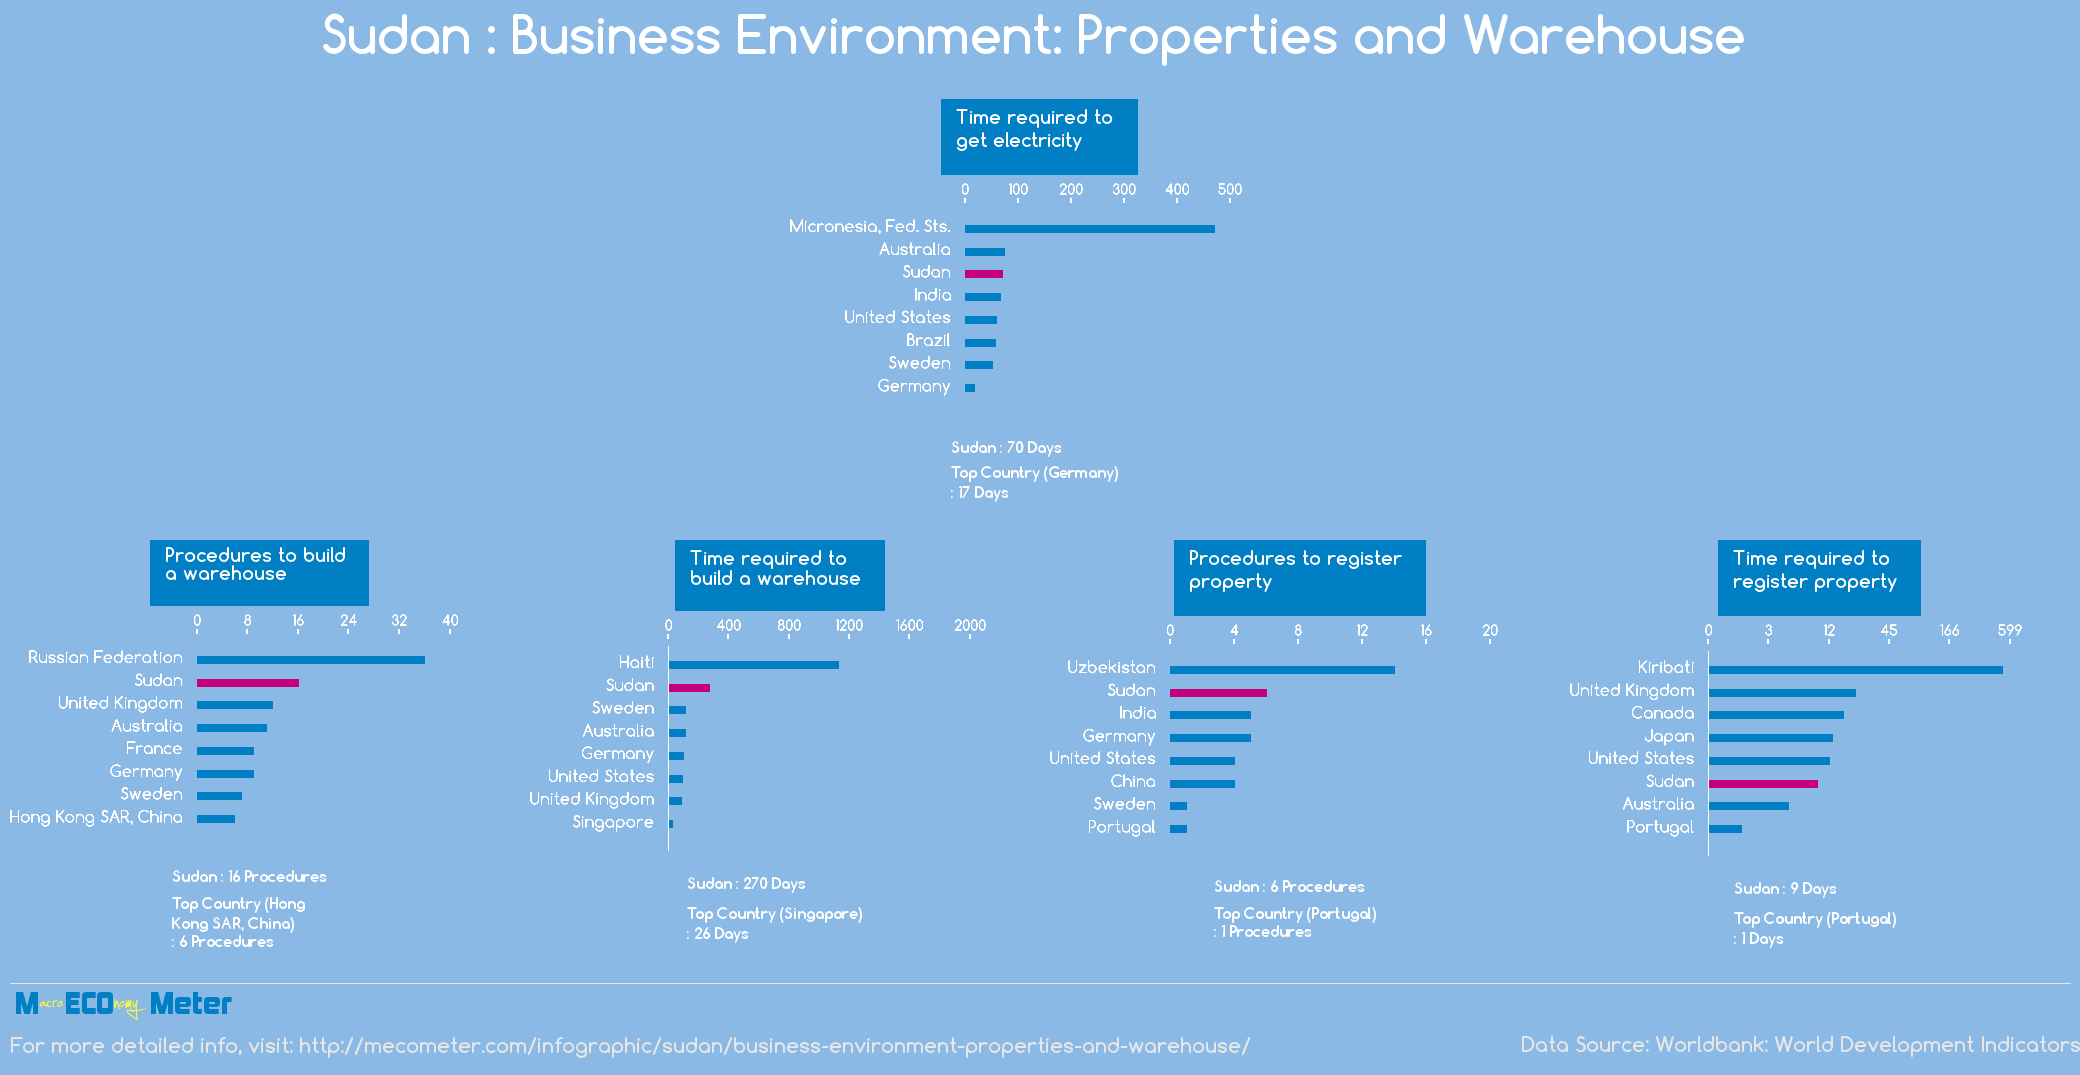 Sudan : Business Environment: Properties and Warehouse